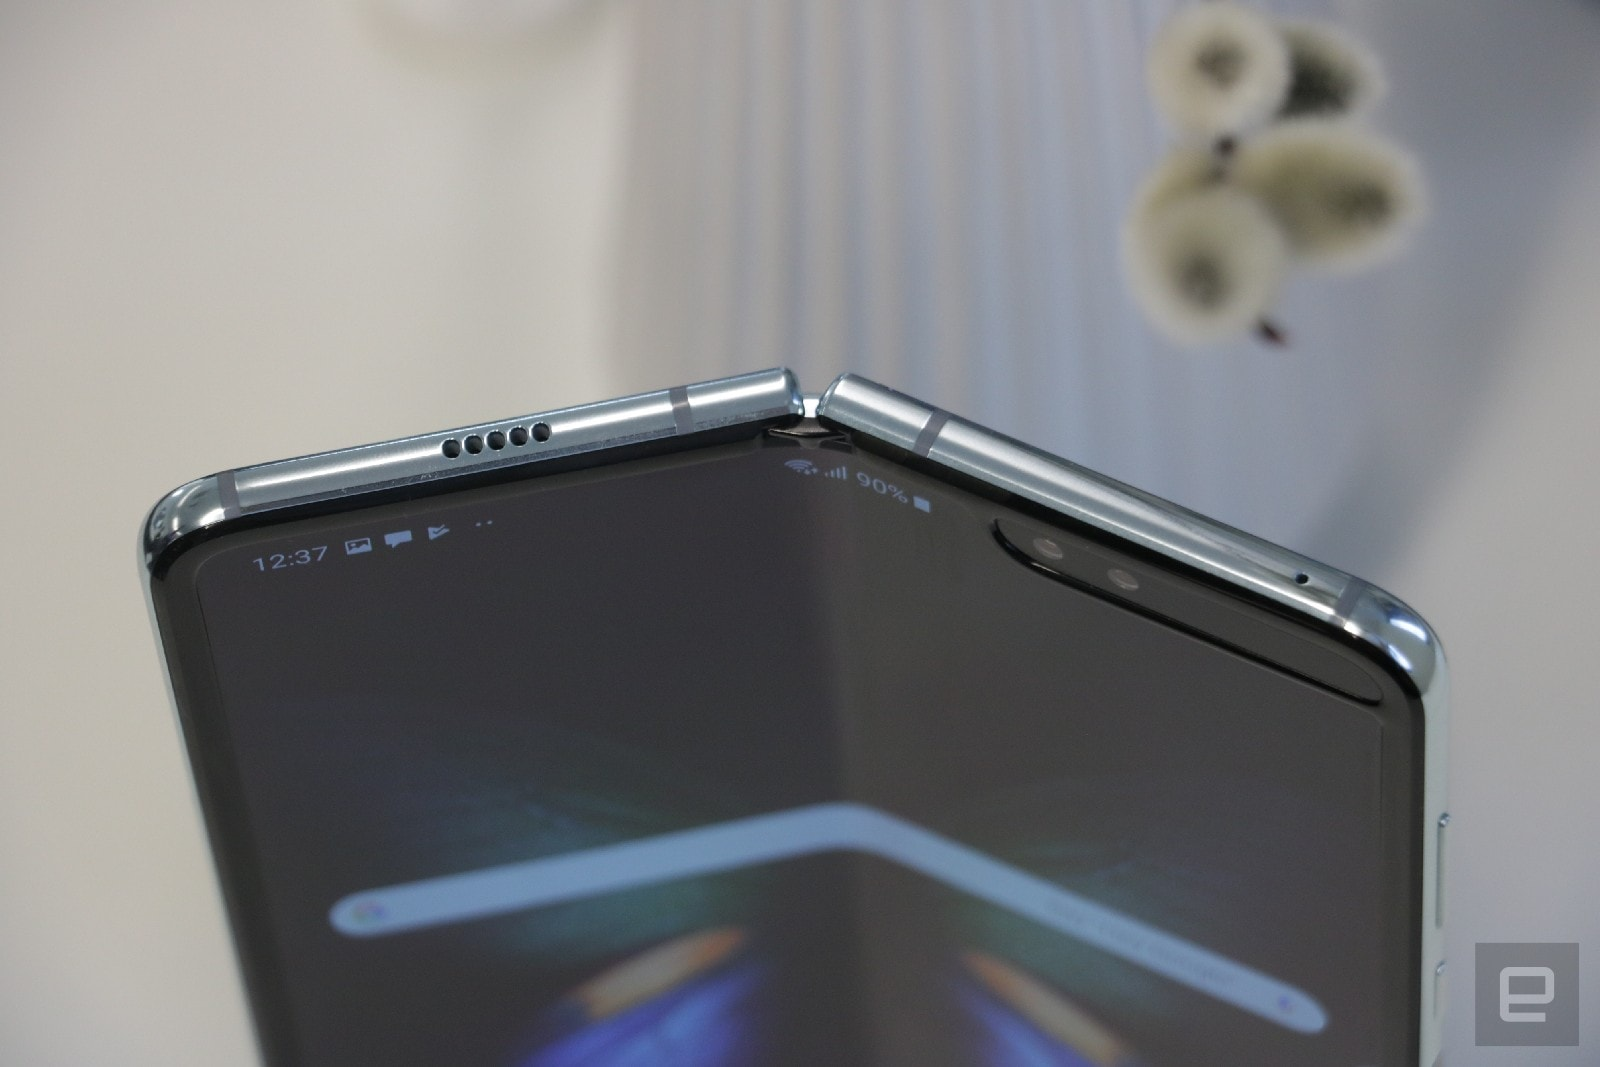 Samsung Galaxy Fold round 2 hands-on at IFA 2019